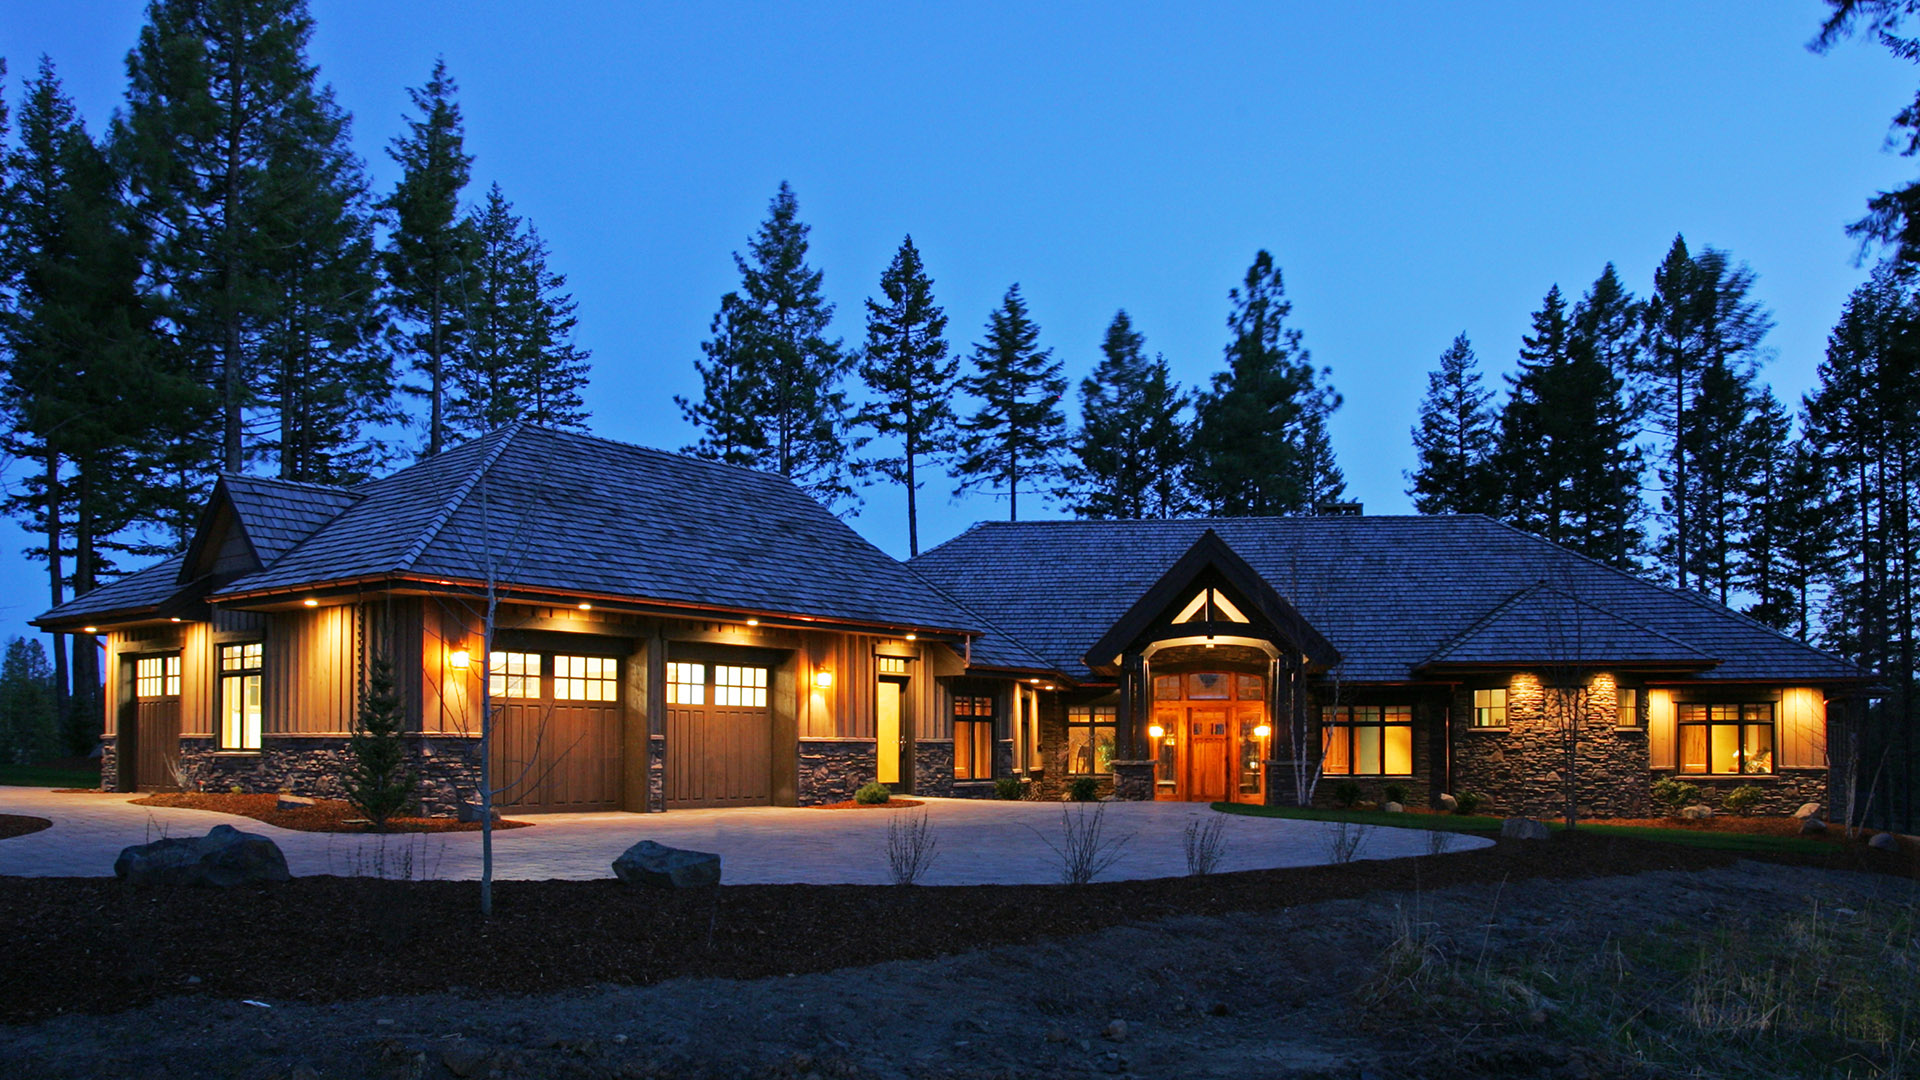 Coeur d'Alene Residence at Night